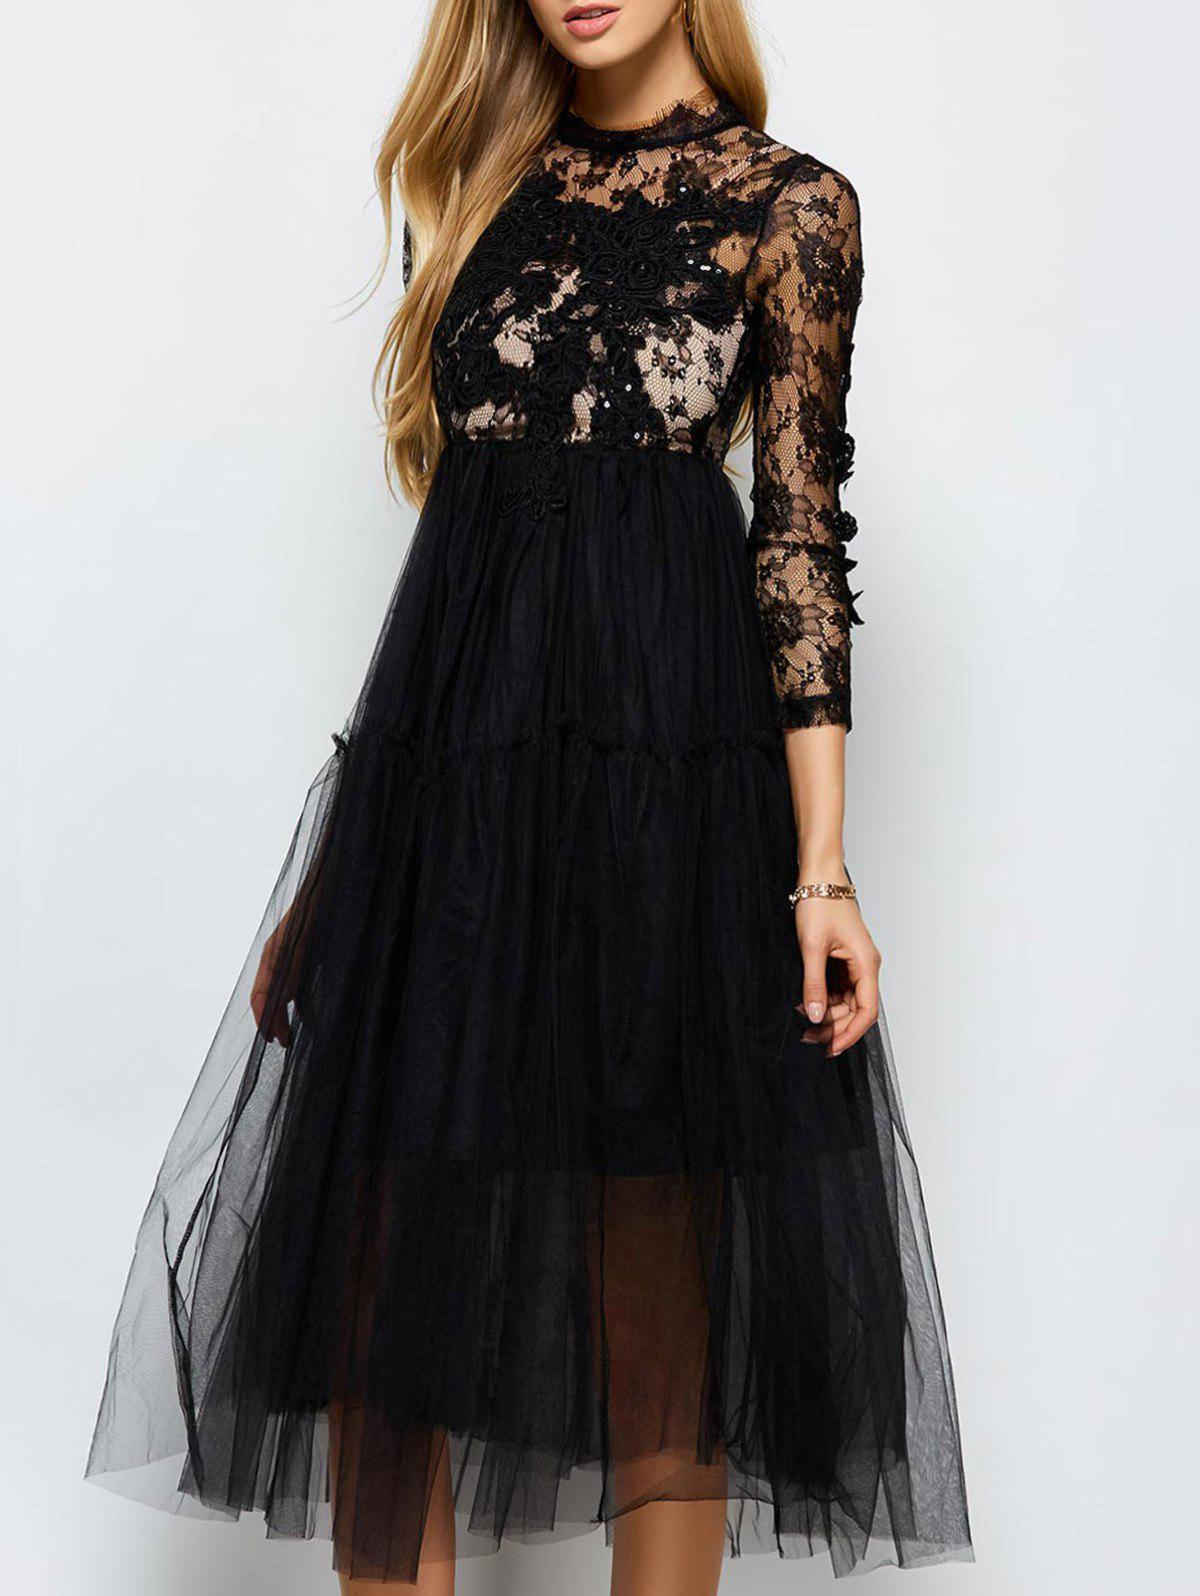 Chic Long Sleeve Lace Sequins Tulle Evening Dress with Bralet Top